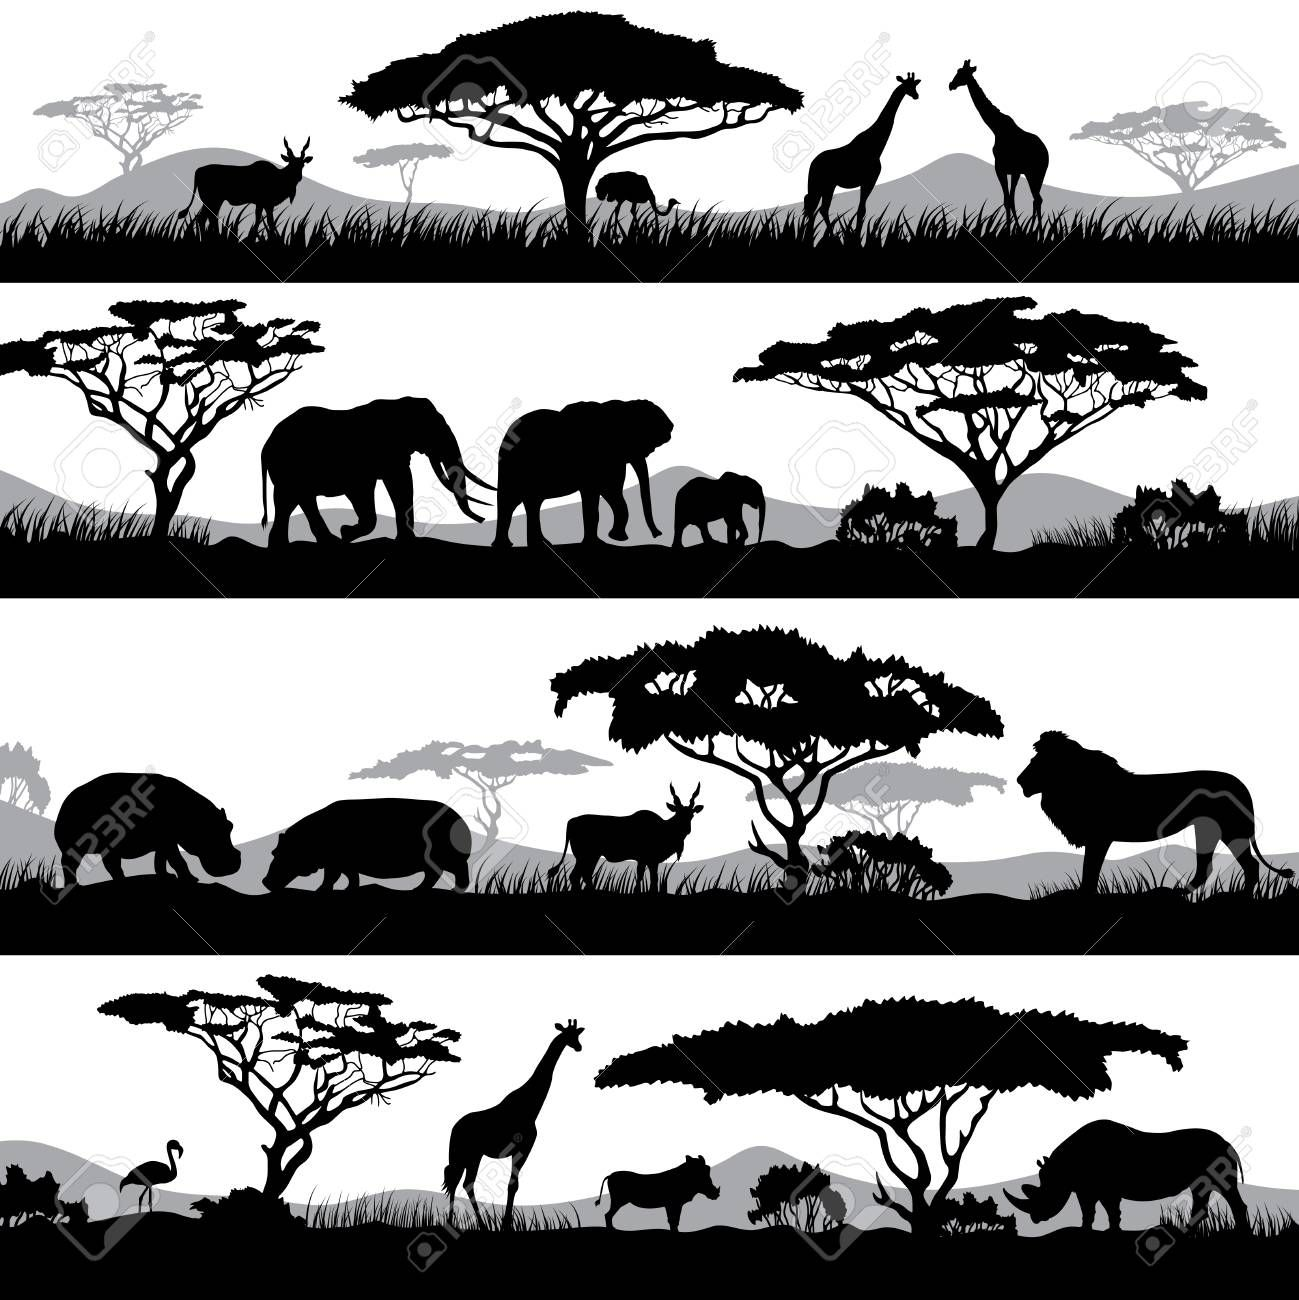 Wild African Life Background Silhouettes Of Different Animals And